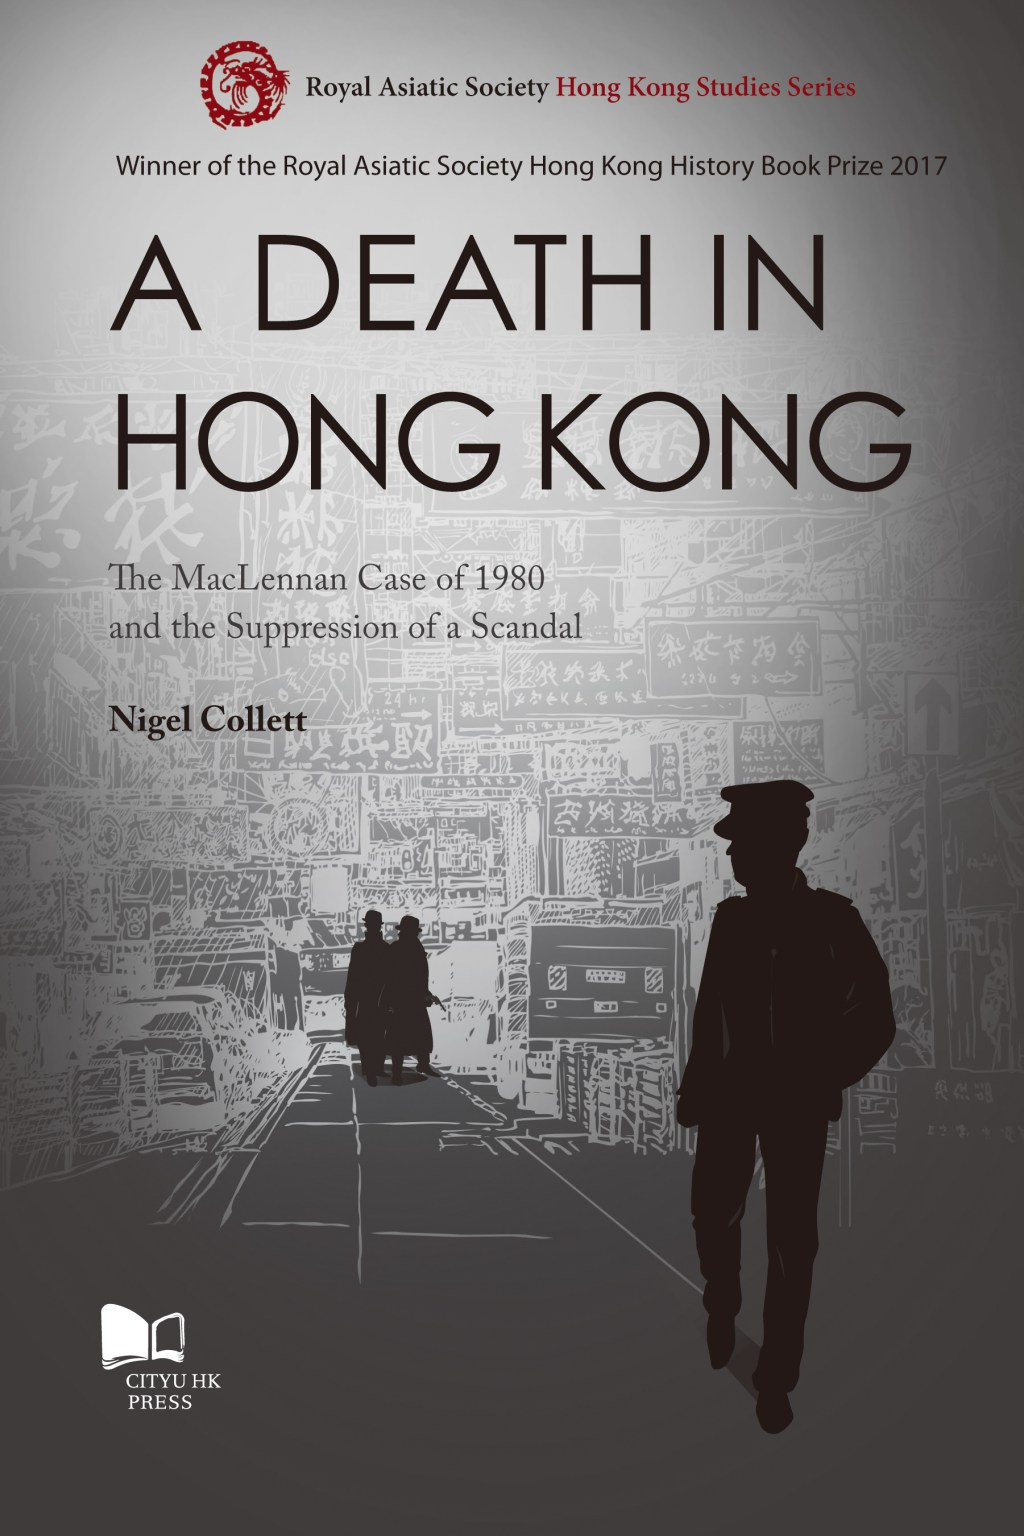 A Death in Hong Kong: The MacLennan Case of 1980 and the Suppression of a Scandal, Nigel Collett (City University of Hong Kong Press,  March 2018)